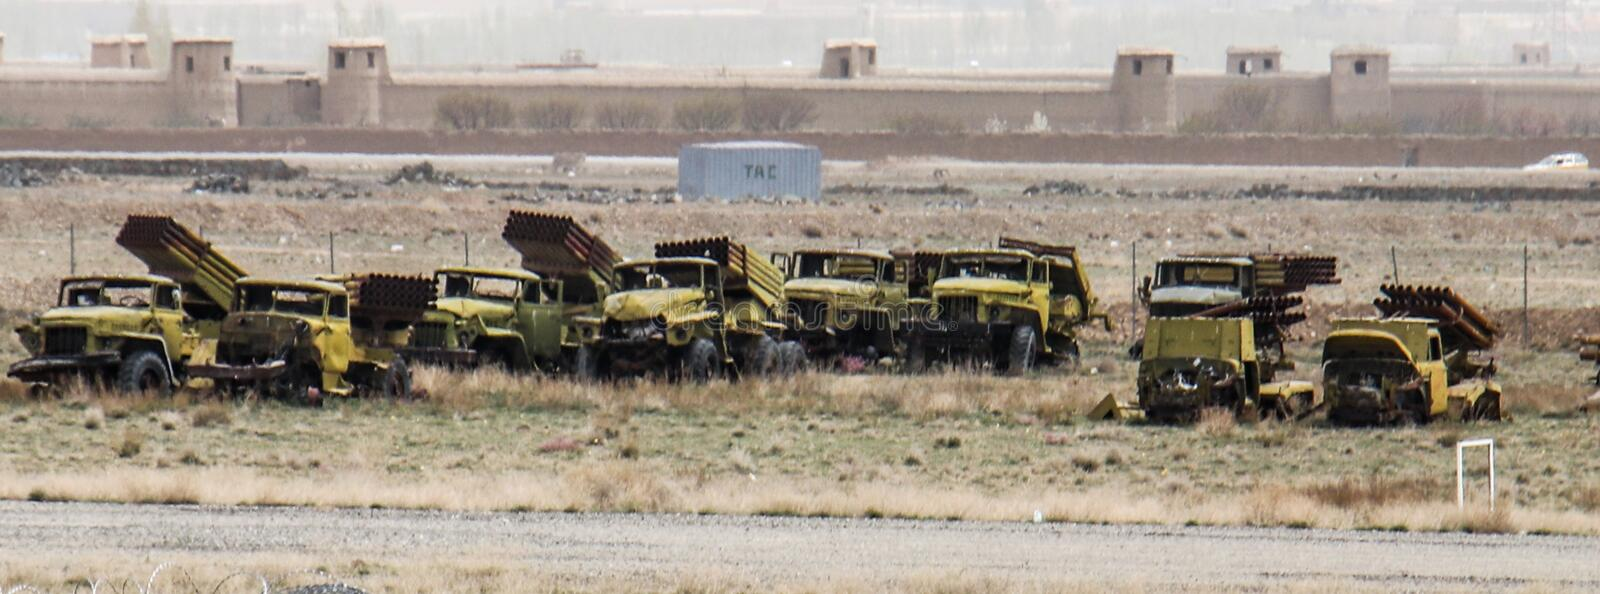 Old Military Vehicles in Gardez in Afghanistan royalty free stock photos